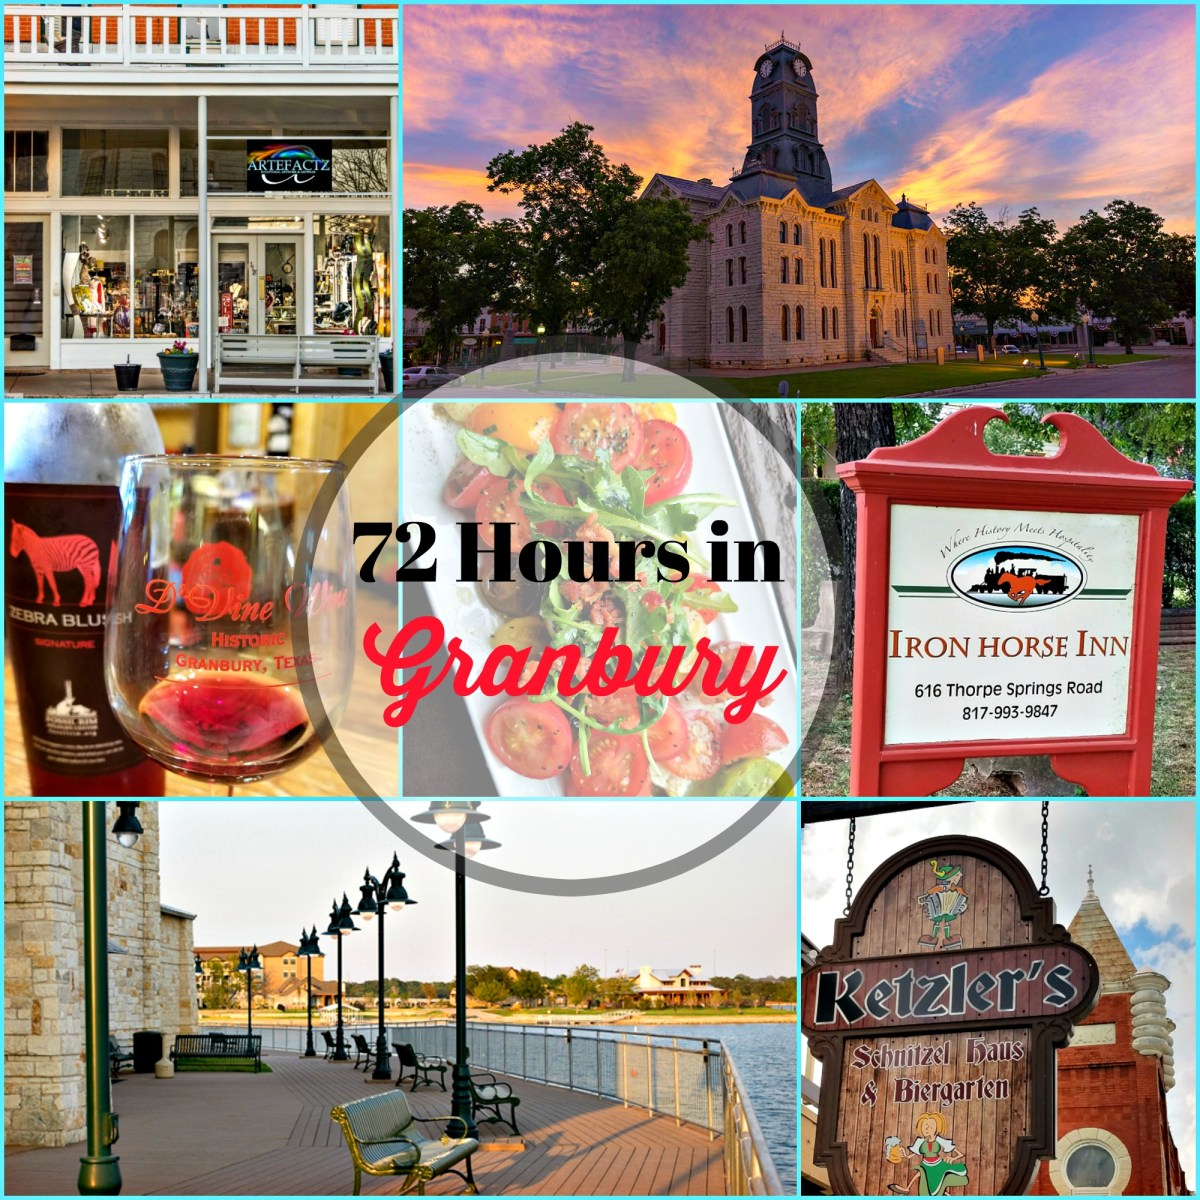 72 Hours in Granbury, Texas